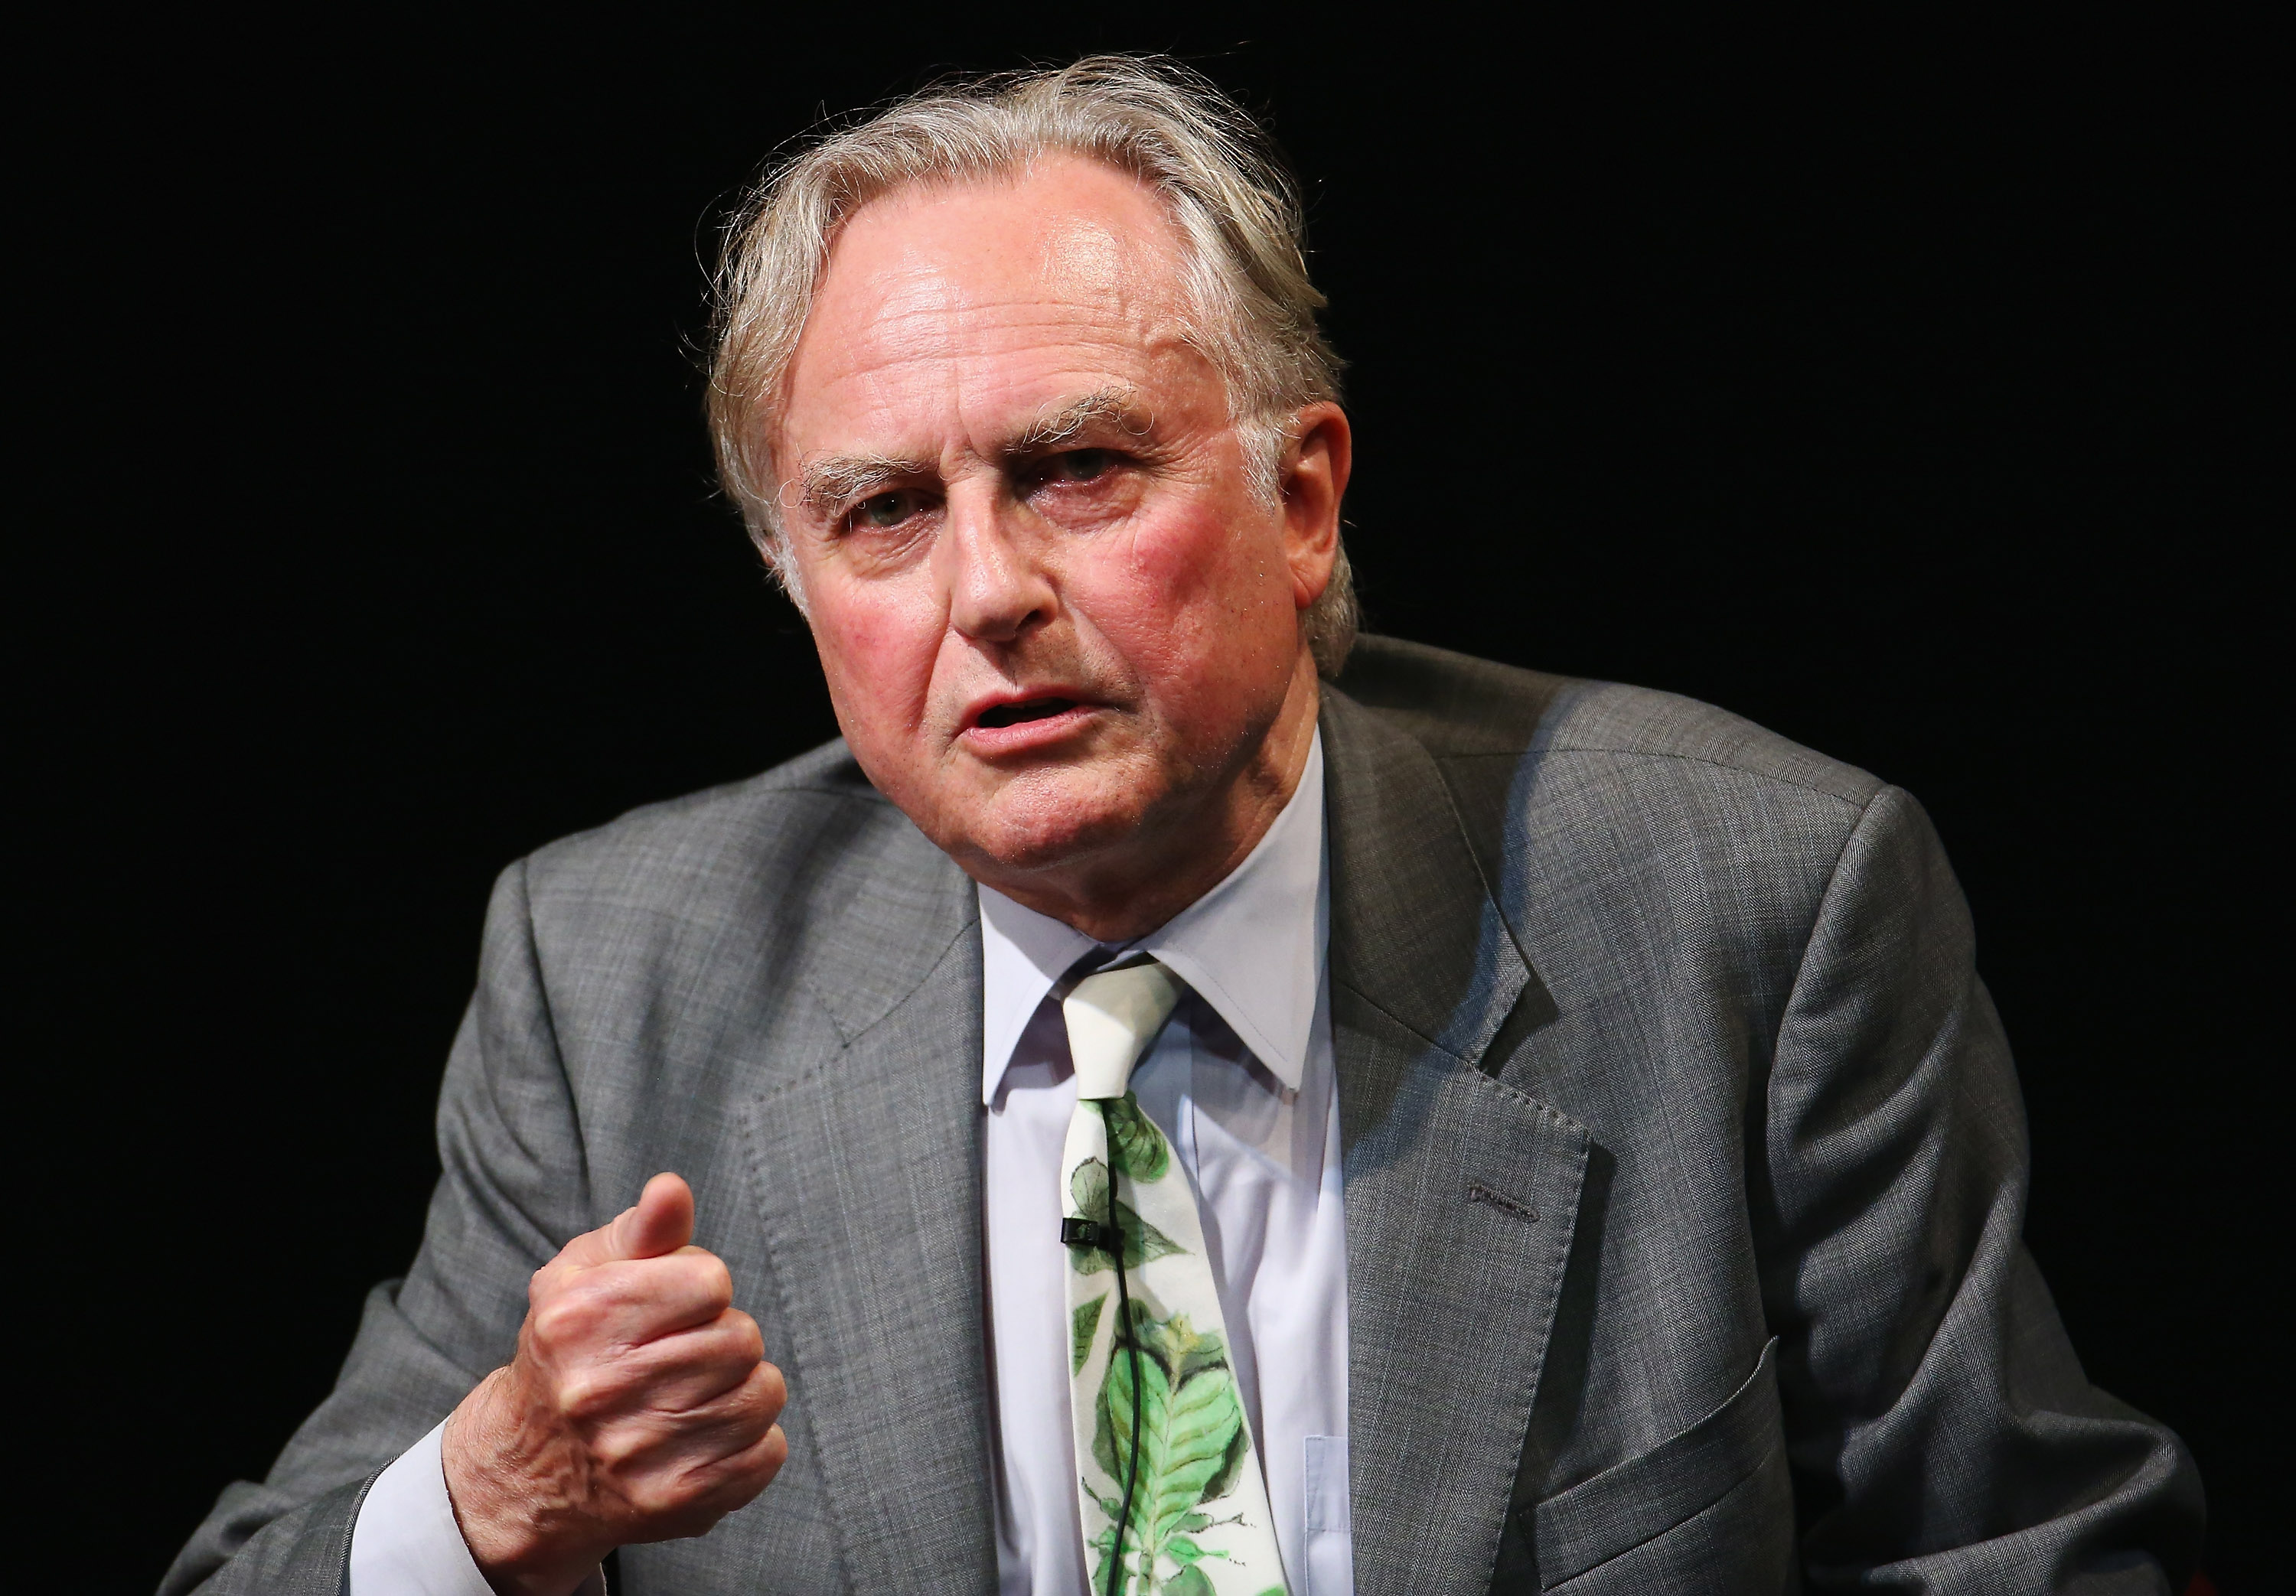 Richard Dawkins, founder of the Richard Dawkins Foundation for Reason and Science, promotes his new book at the Seymour Centre on December 4, 2014 in Sydney, Australia.